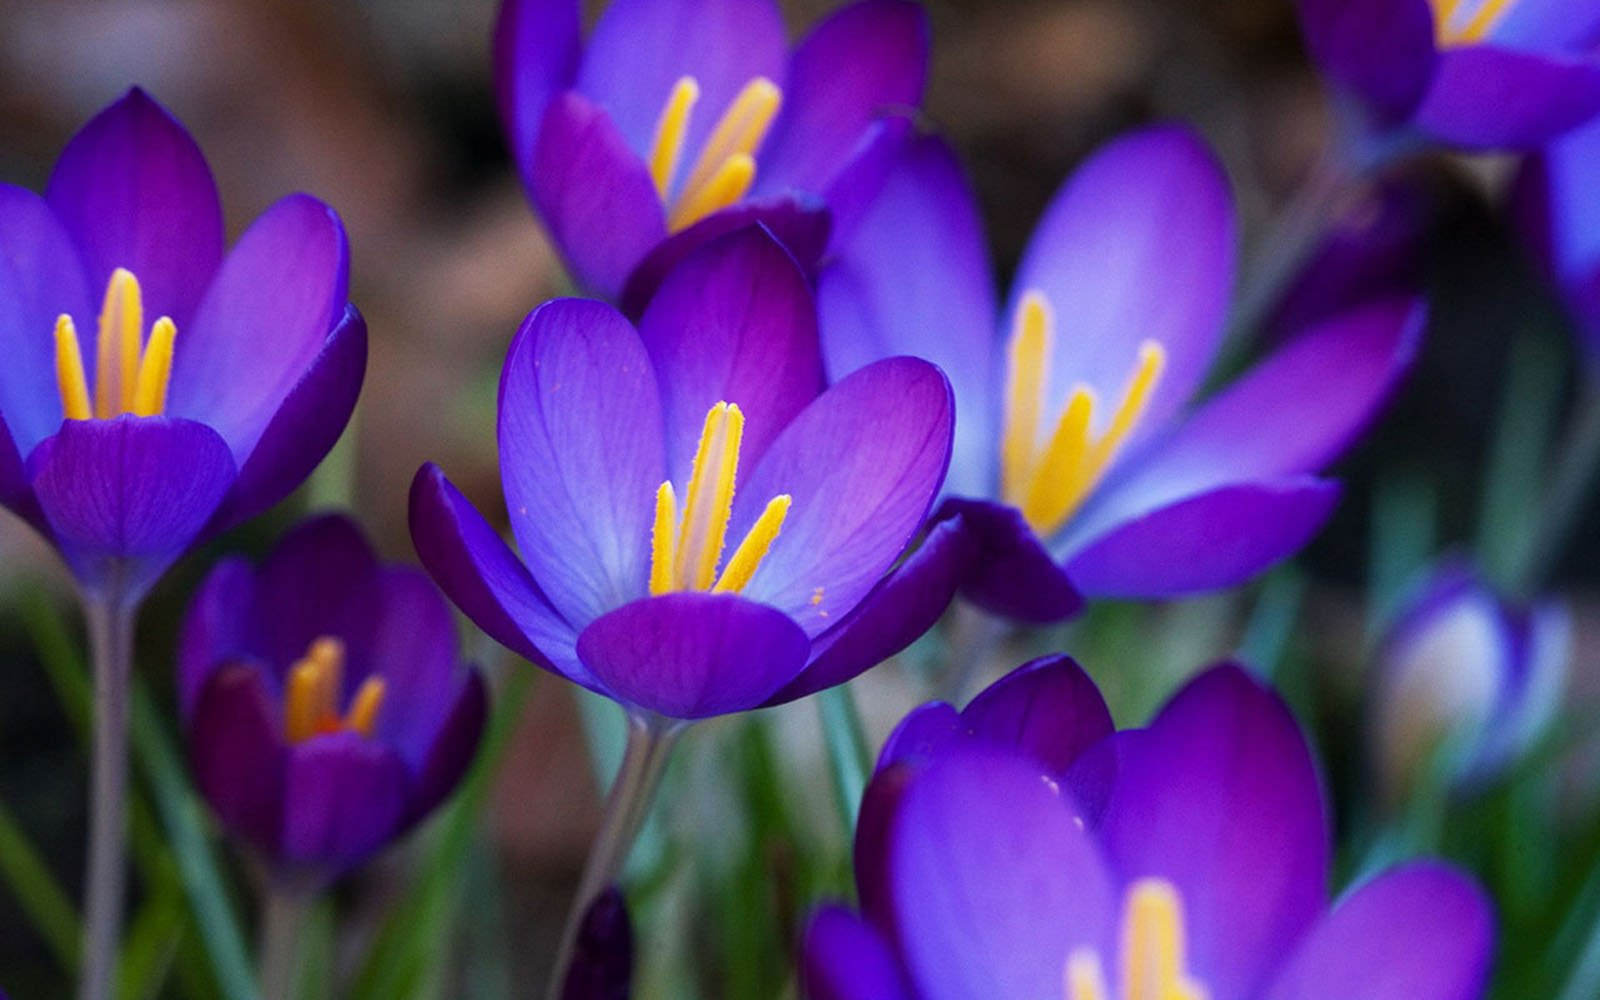 Crocus Flowers Wallpapers Purple Crocus Flowers Desktop Wallpapers 1600x1000